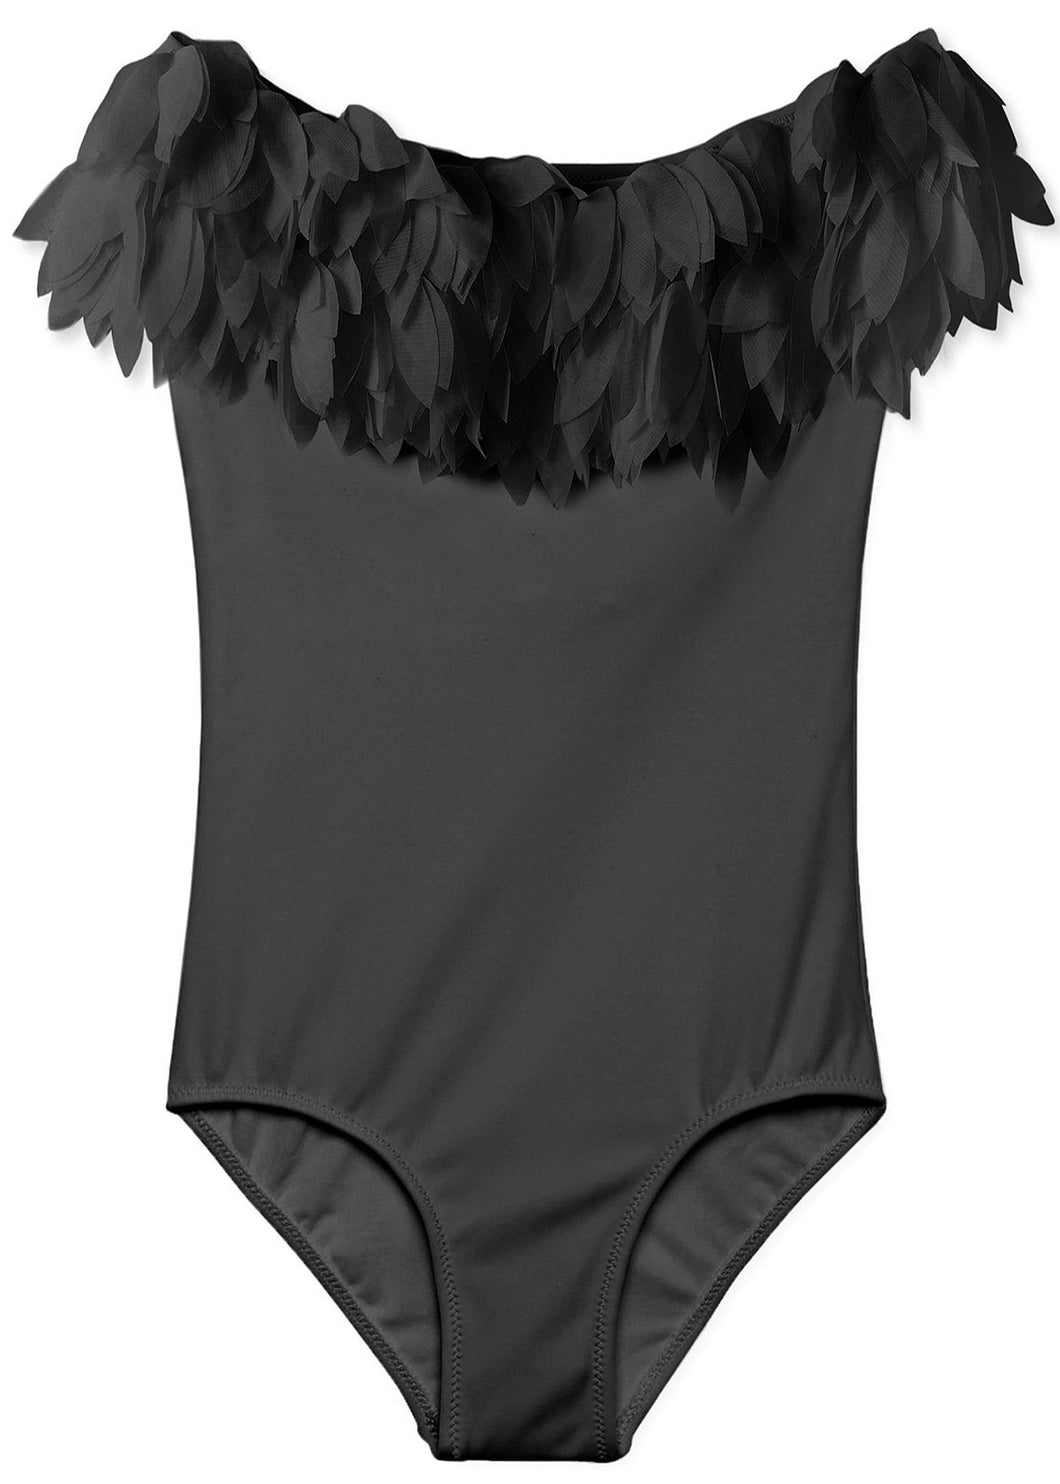 Black Draped Swimsuit with Black Petals